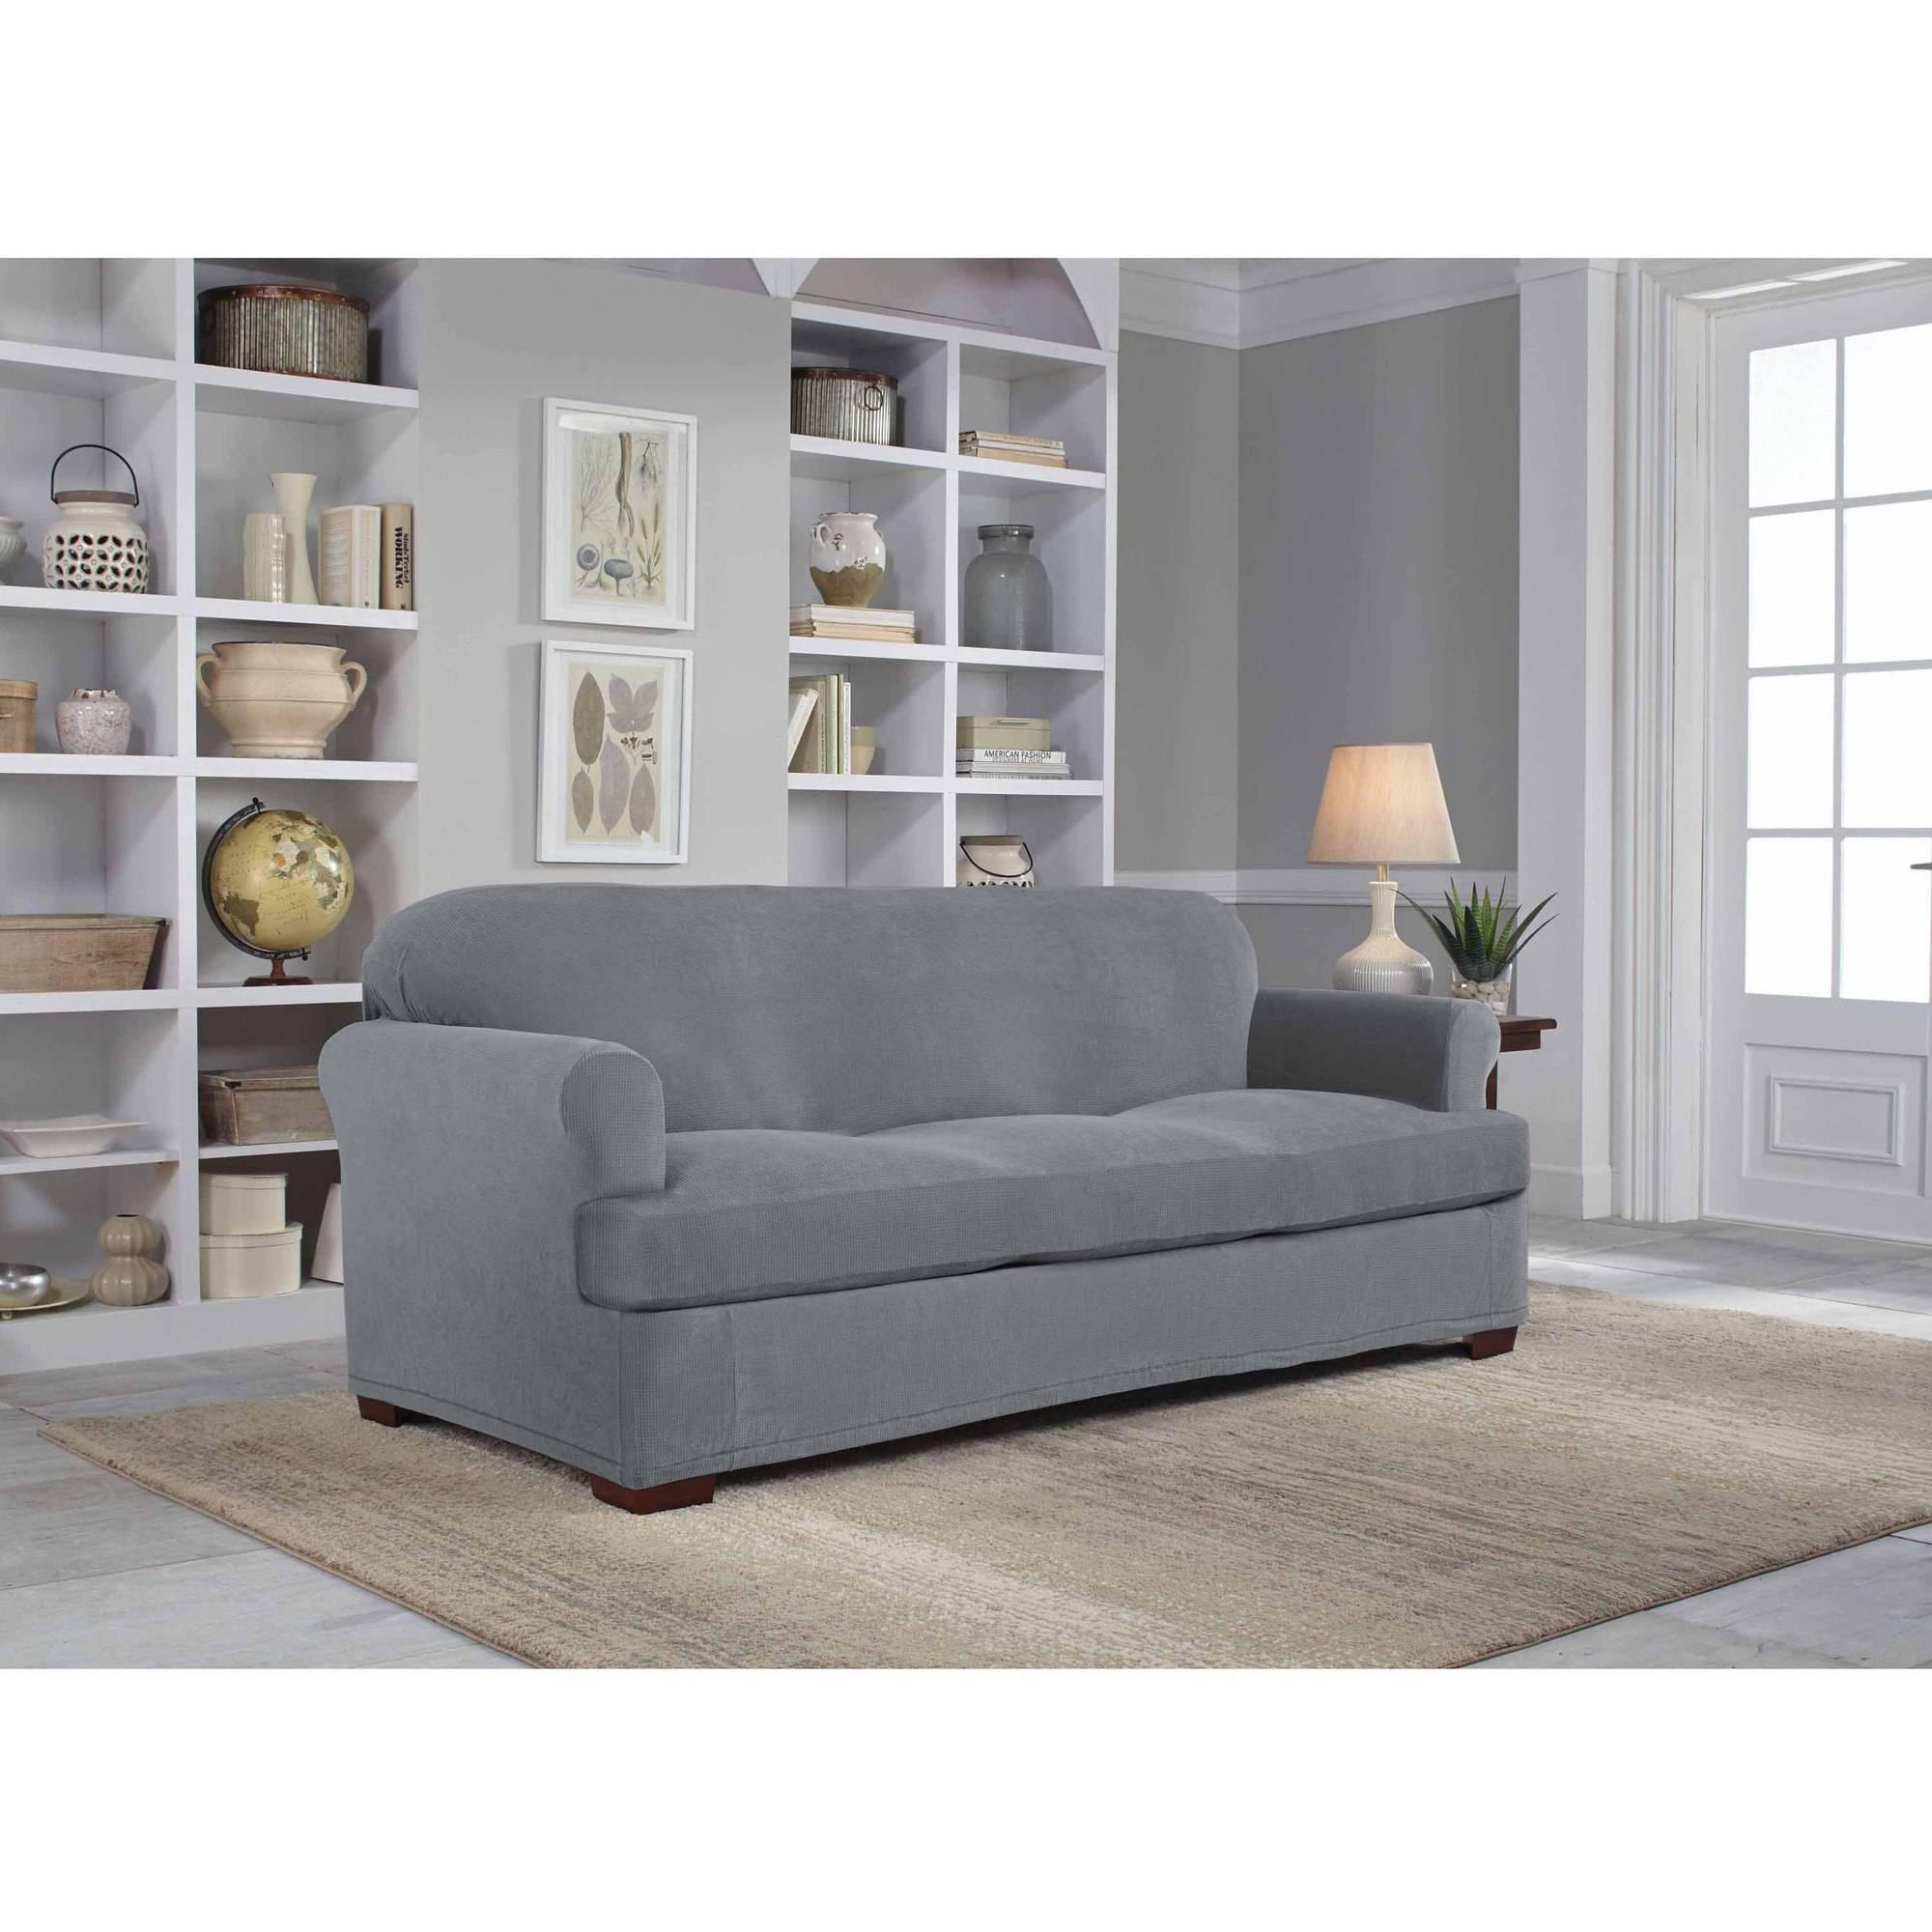 Serta Stretch Grid Slipcover, Sofa, 2 Piece T Cushion – Walmart Intended For Stretch Slipcover Sofas (View 18 of 20)